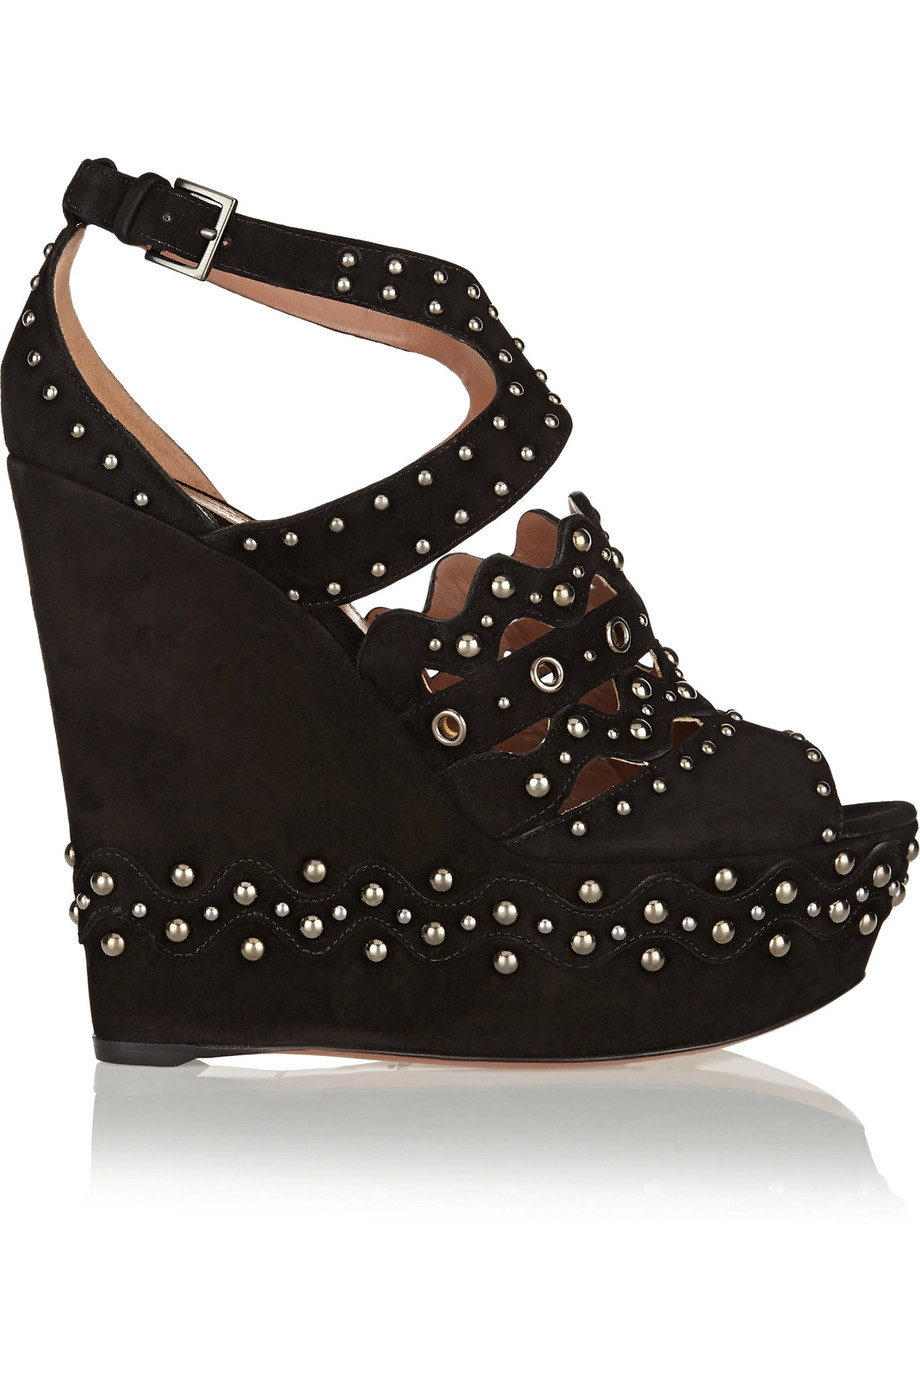 3206200fed0 AlaÏA Studded Suede Wedge Sandals